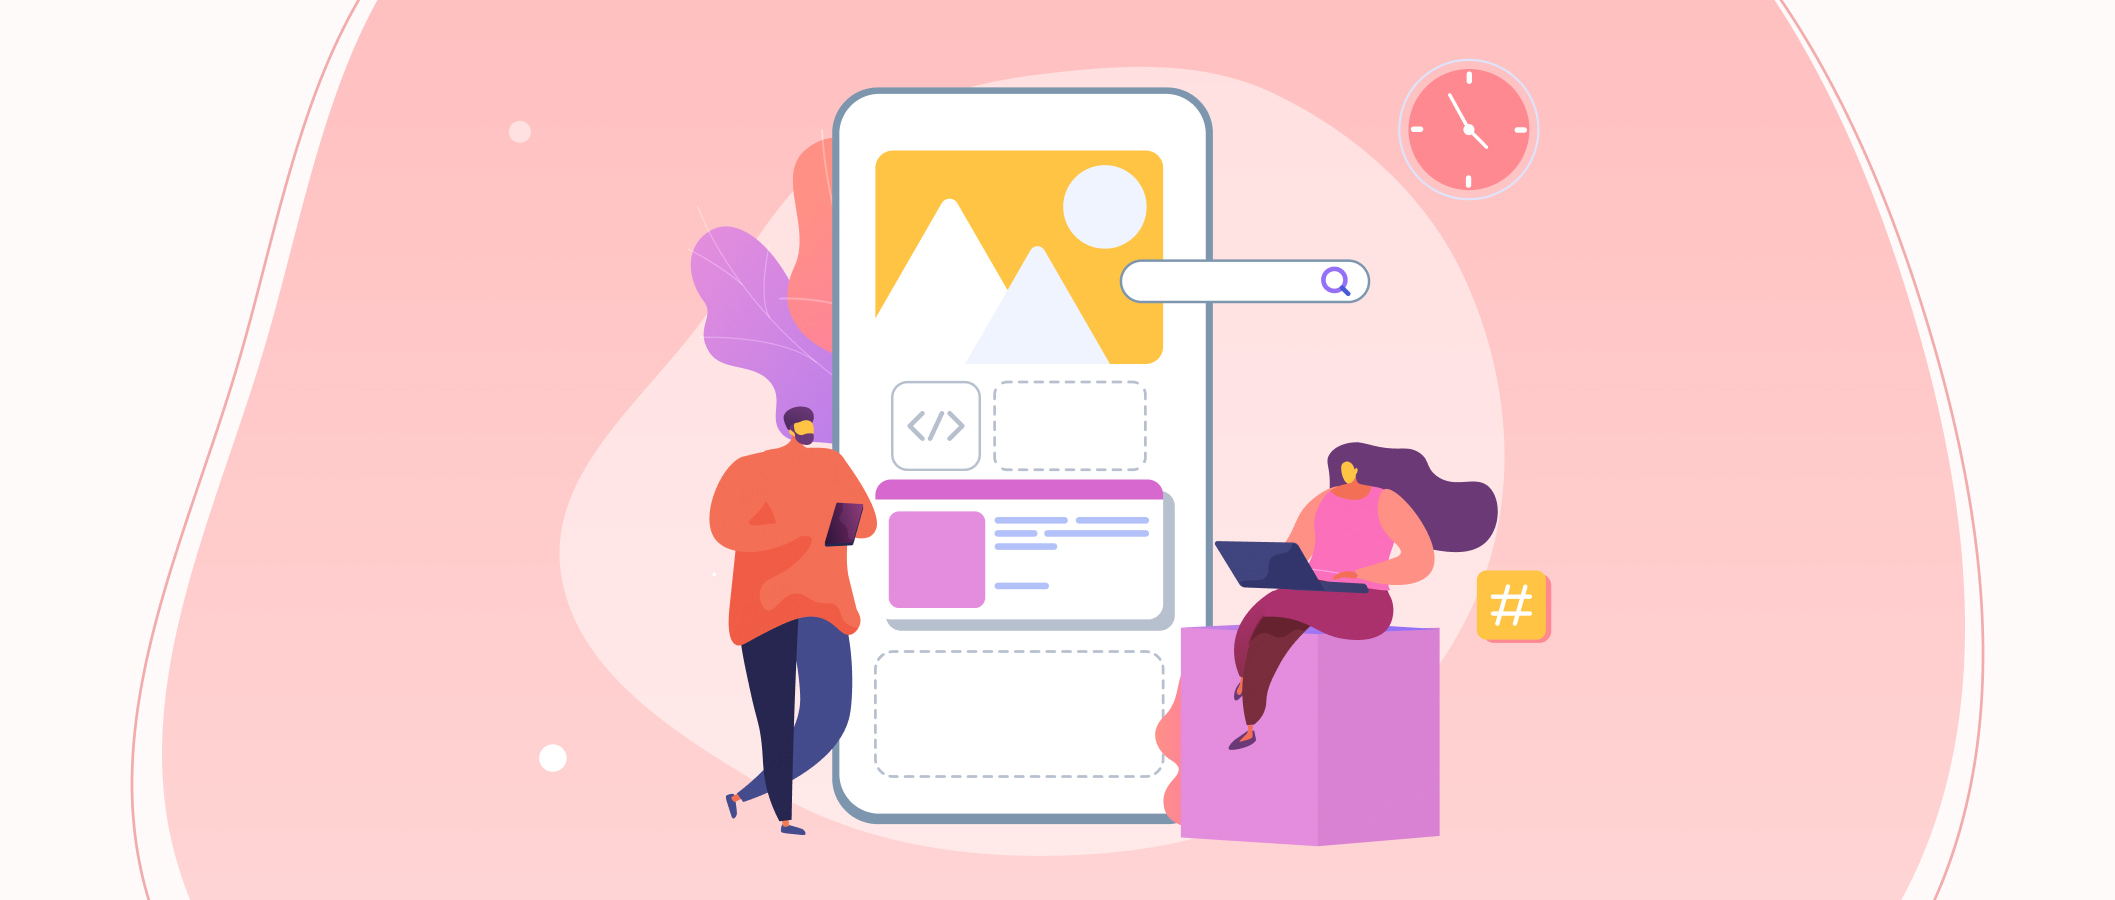 How to Make a Mobile-First Website